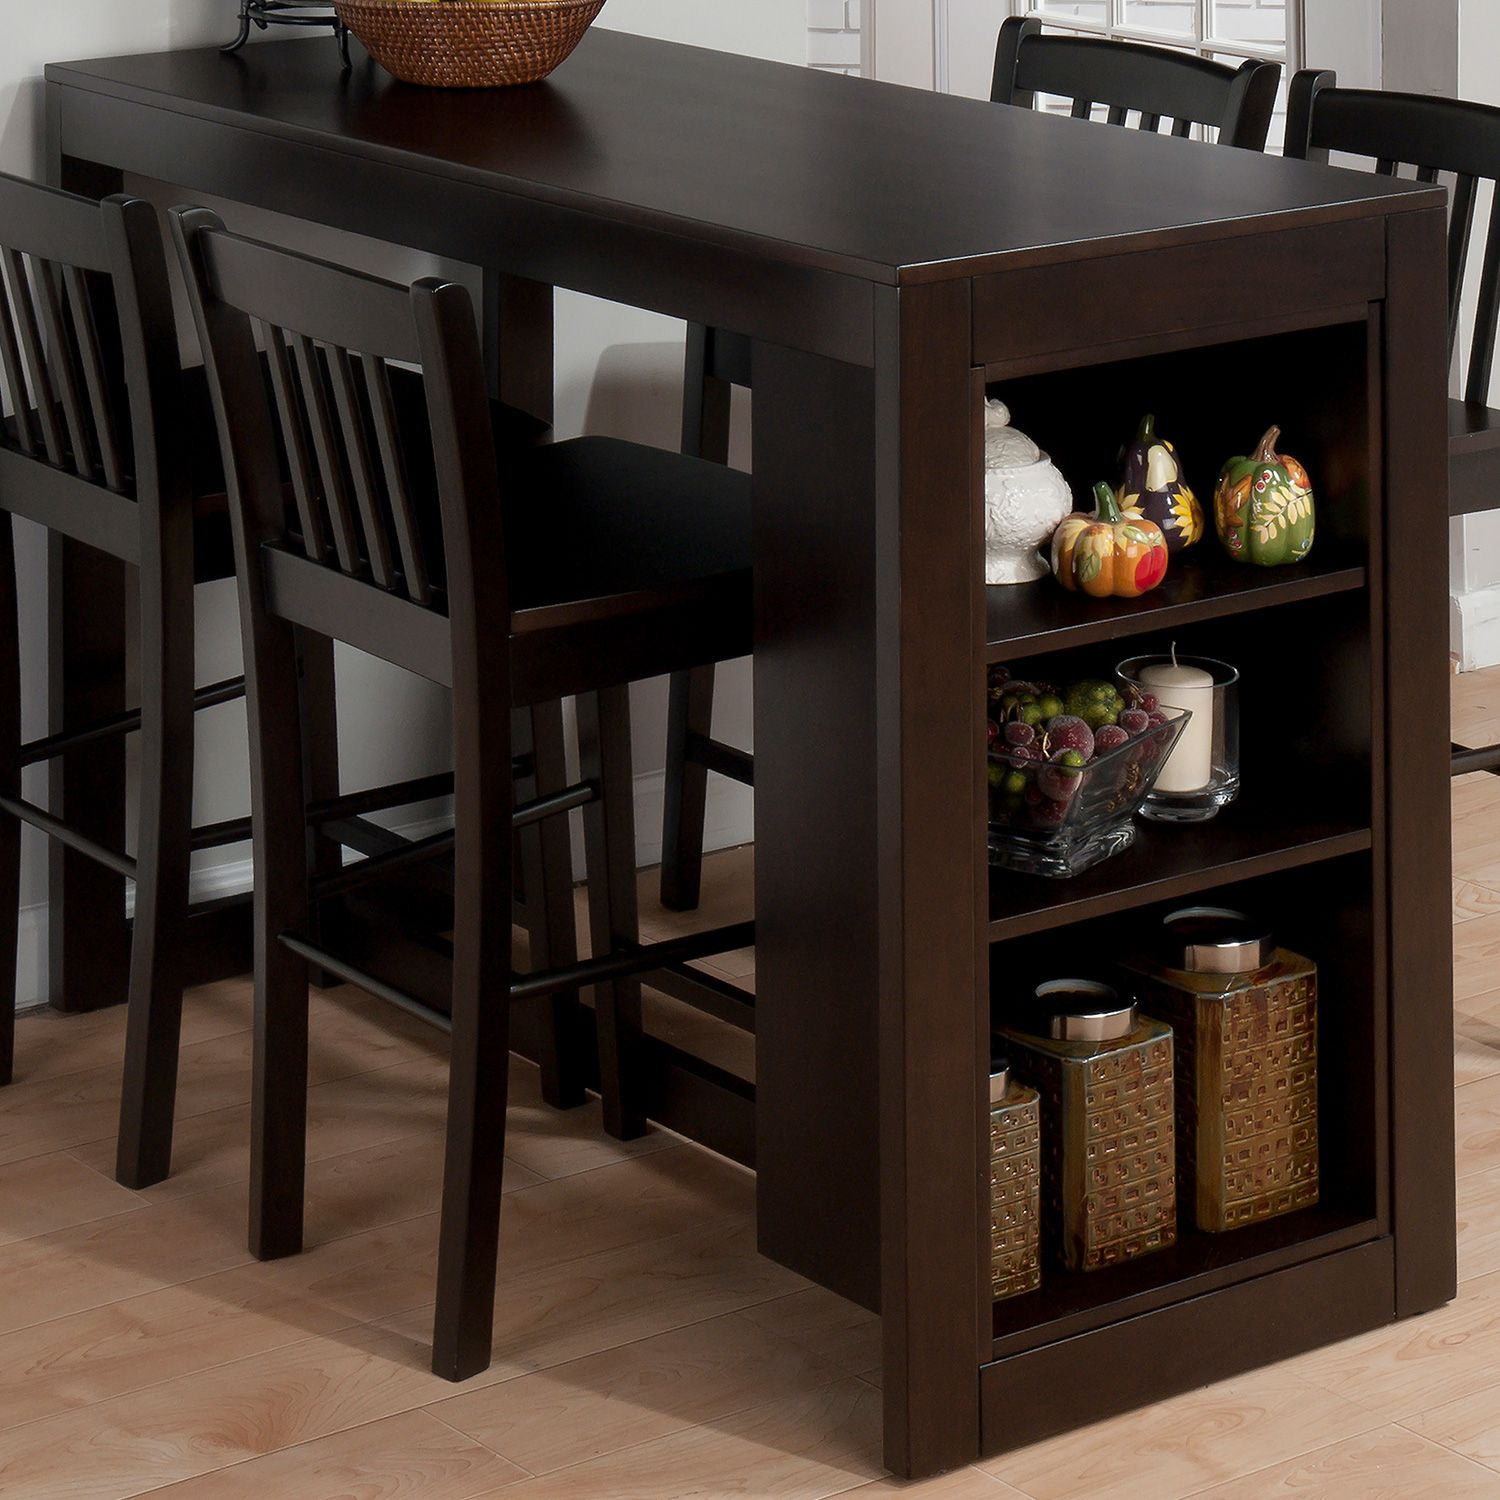 Jofran 810ec 48 Tribeca Counter Height Table 3 Storage Shelves Merlot In 2020 Dining Room Small Small Kitchen Tables Space Saving Dining Table